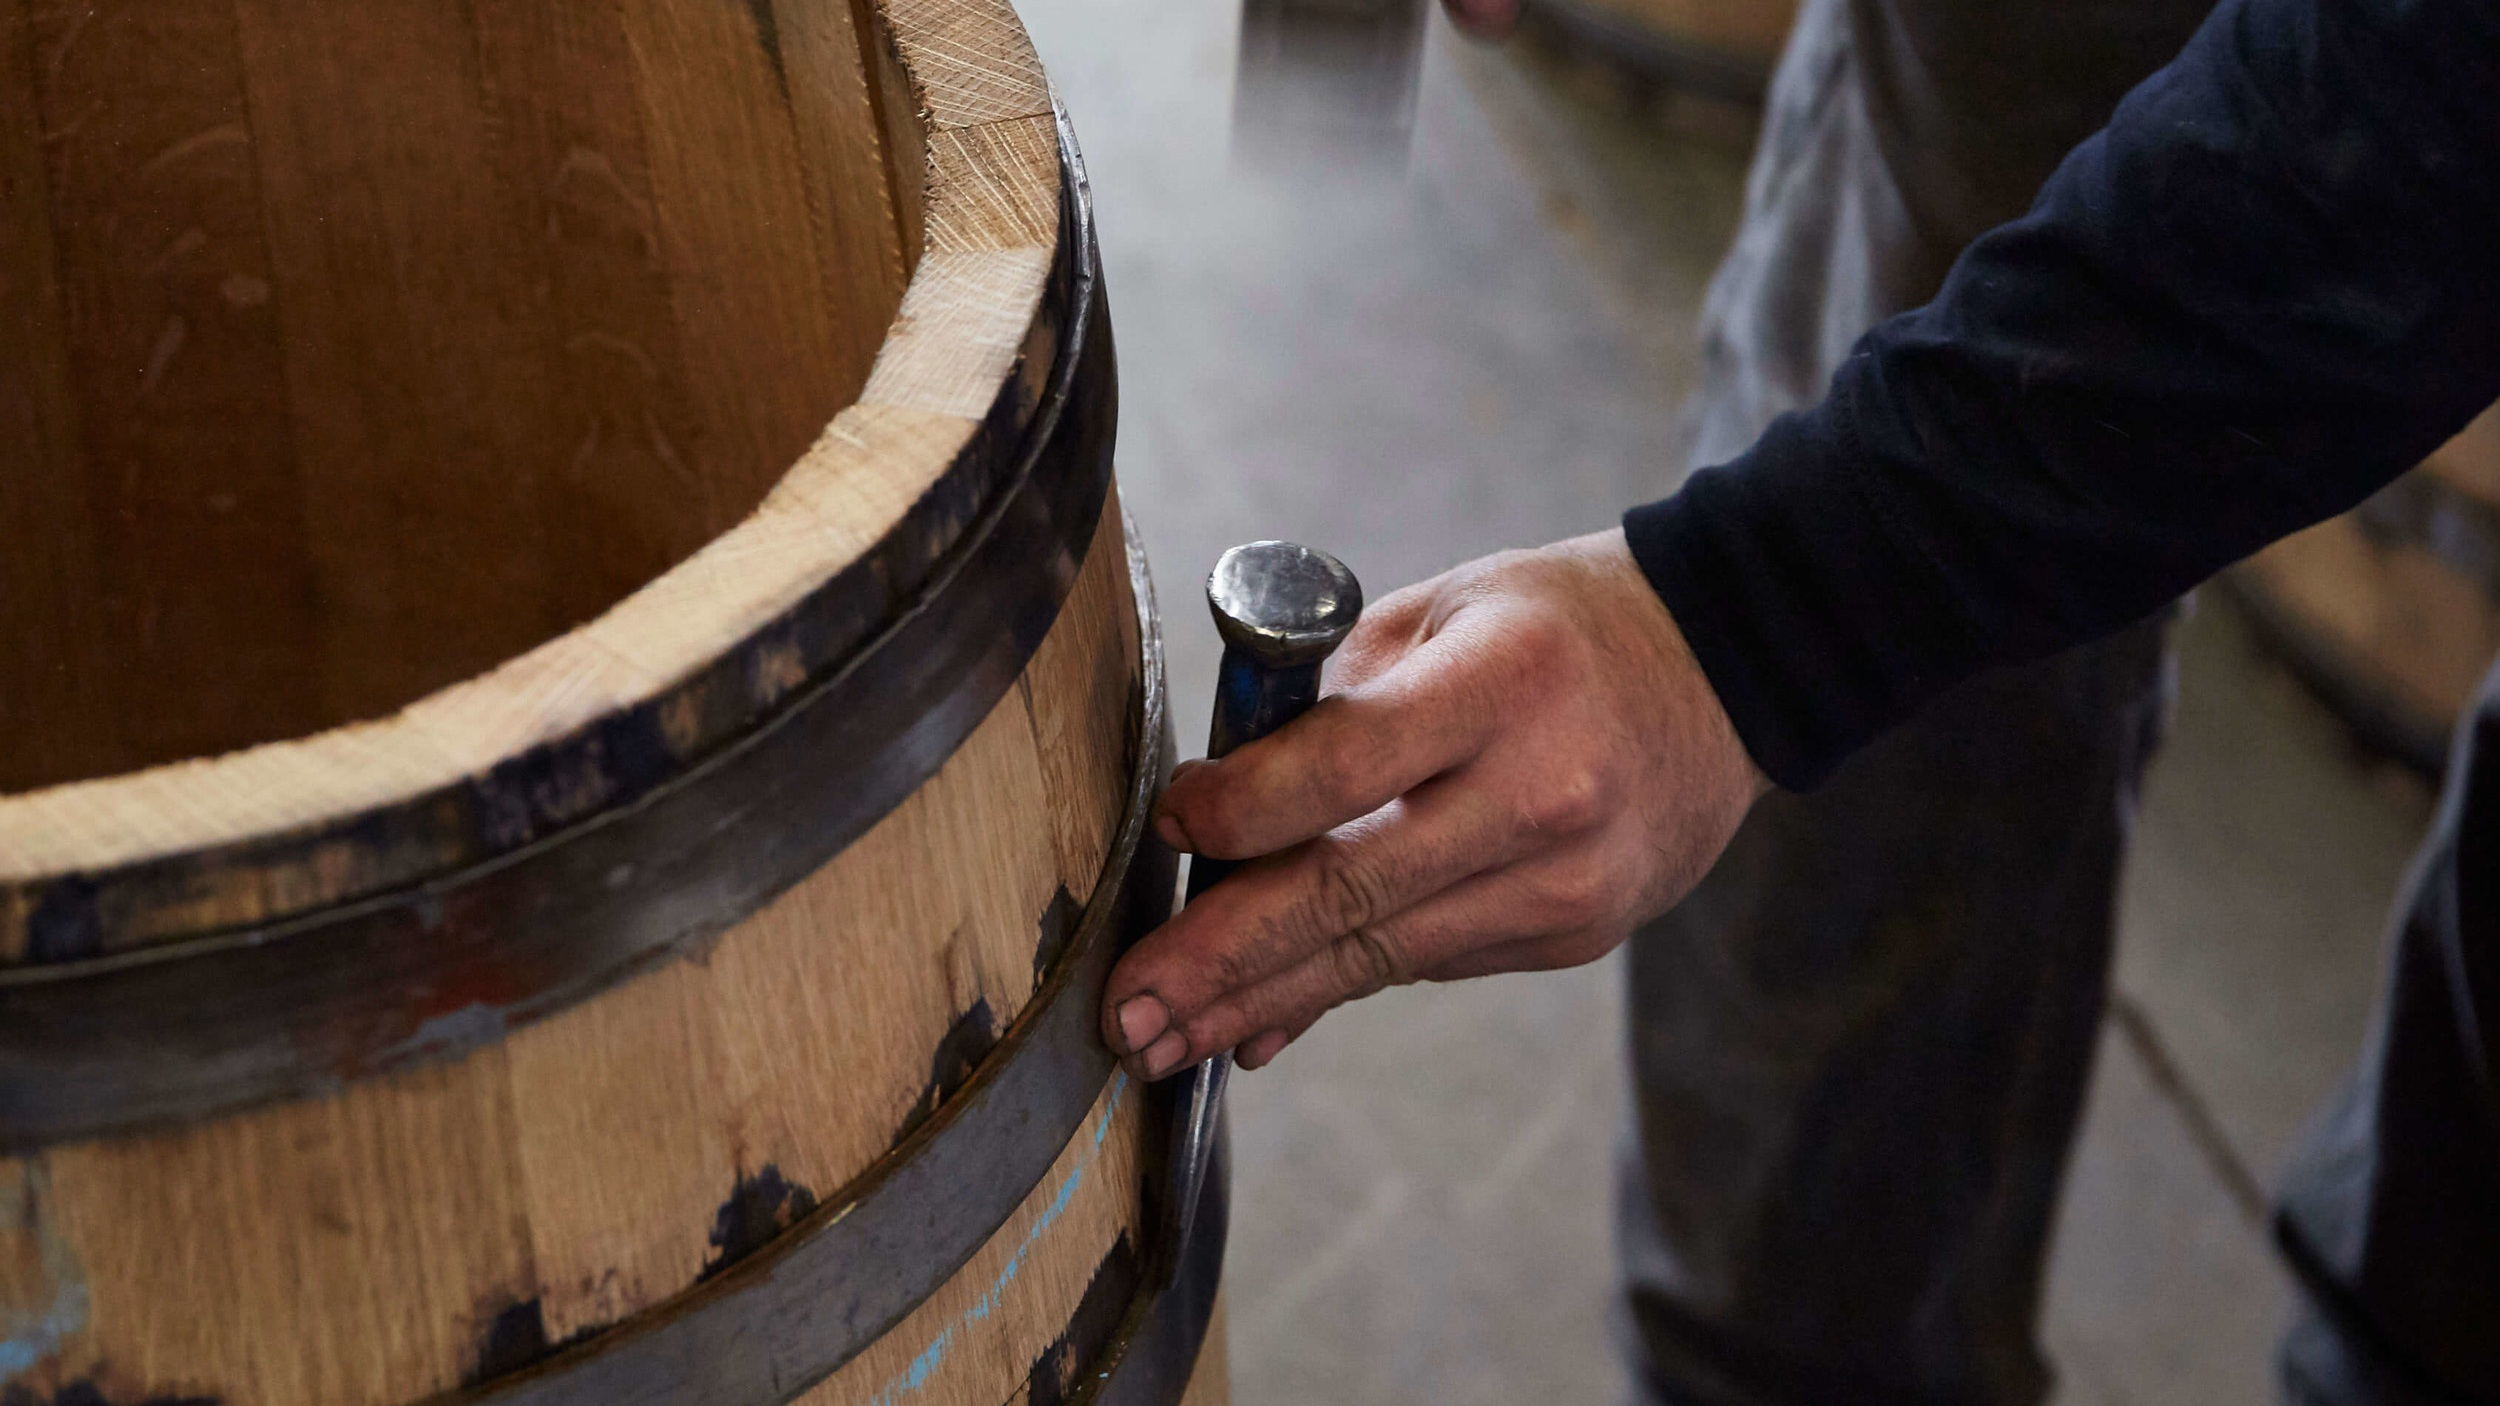 ADK+Barrel+Cooperage+-+Our+Barrels+-+Hand+crafted.jpg